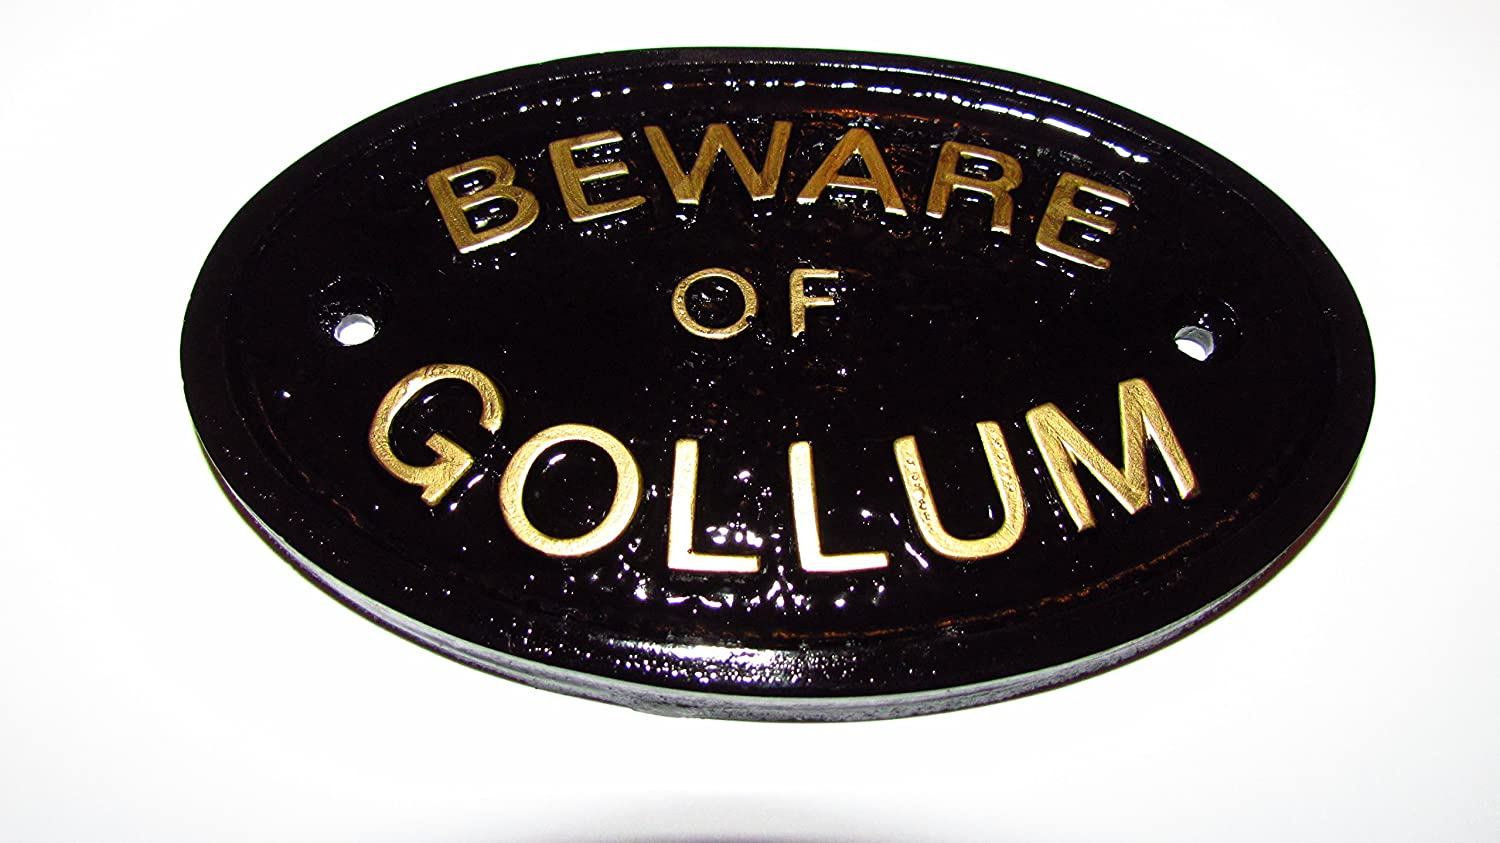 """BEWARE OF THE GOLLUM"" (MIDDLE EARTH) HOUSE/GARDEN WALL PLAQUE IN BLACK WITH GOLD RAISED LETTERING"